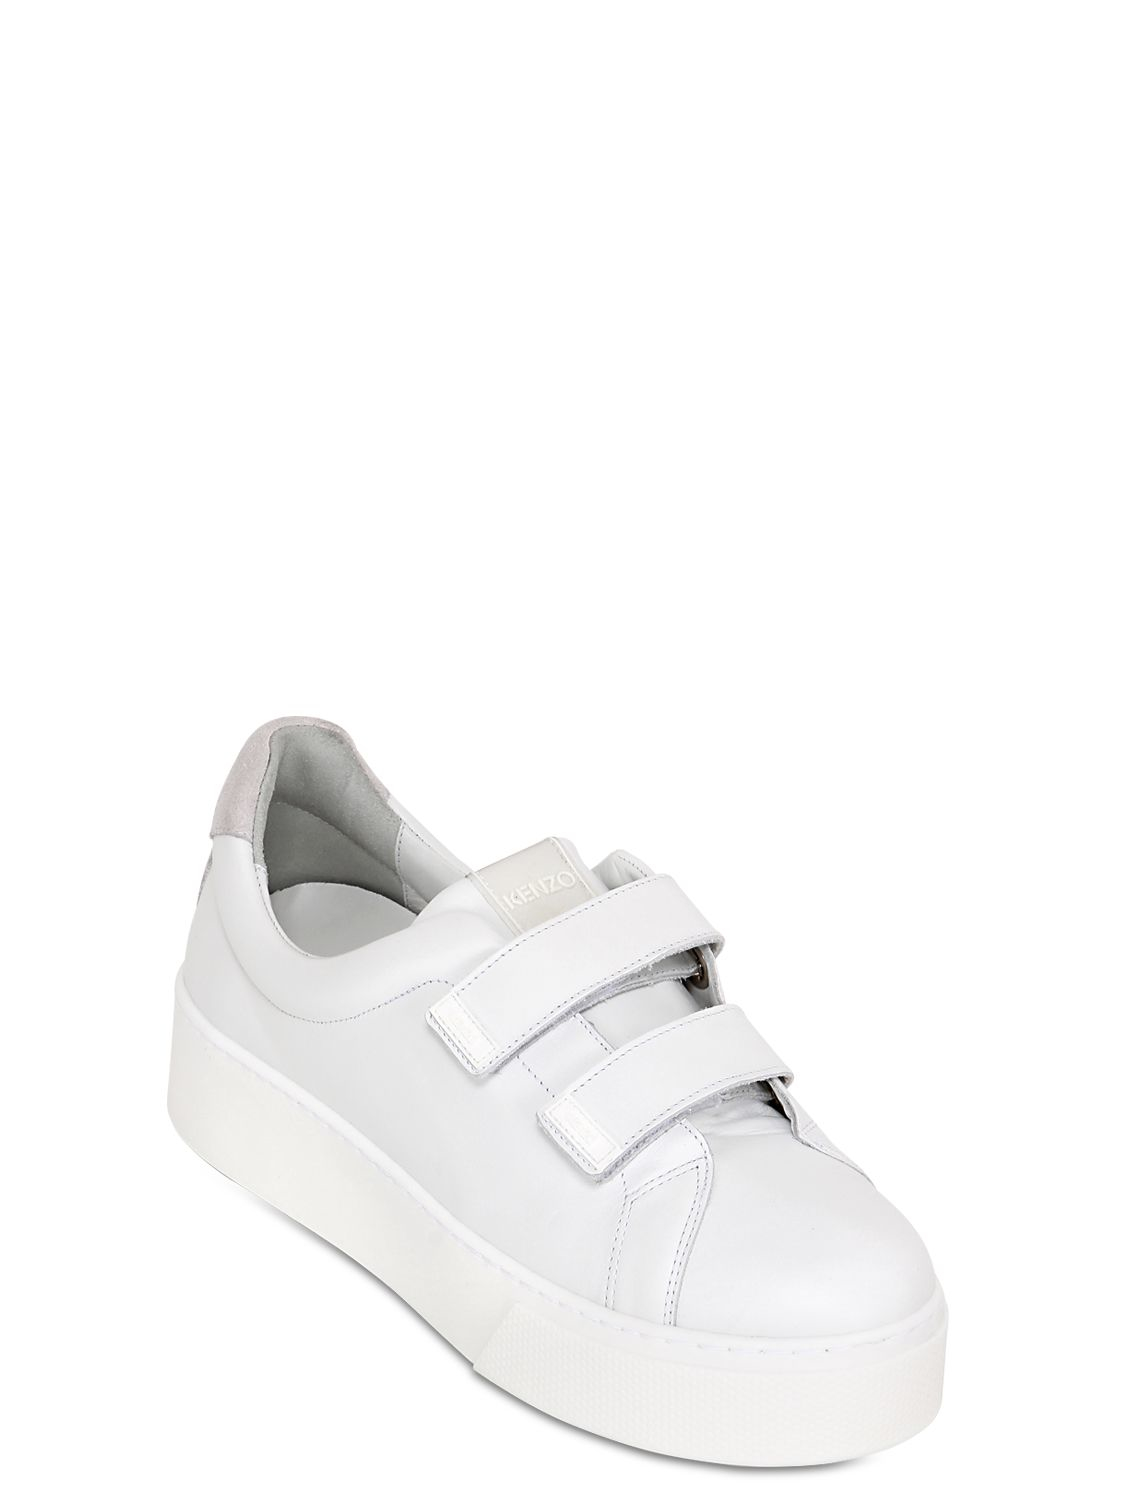 980b5d2fe141 Lyst - KENZO 50mm Chunky Leather Sneakers in White